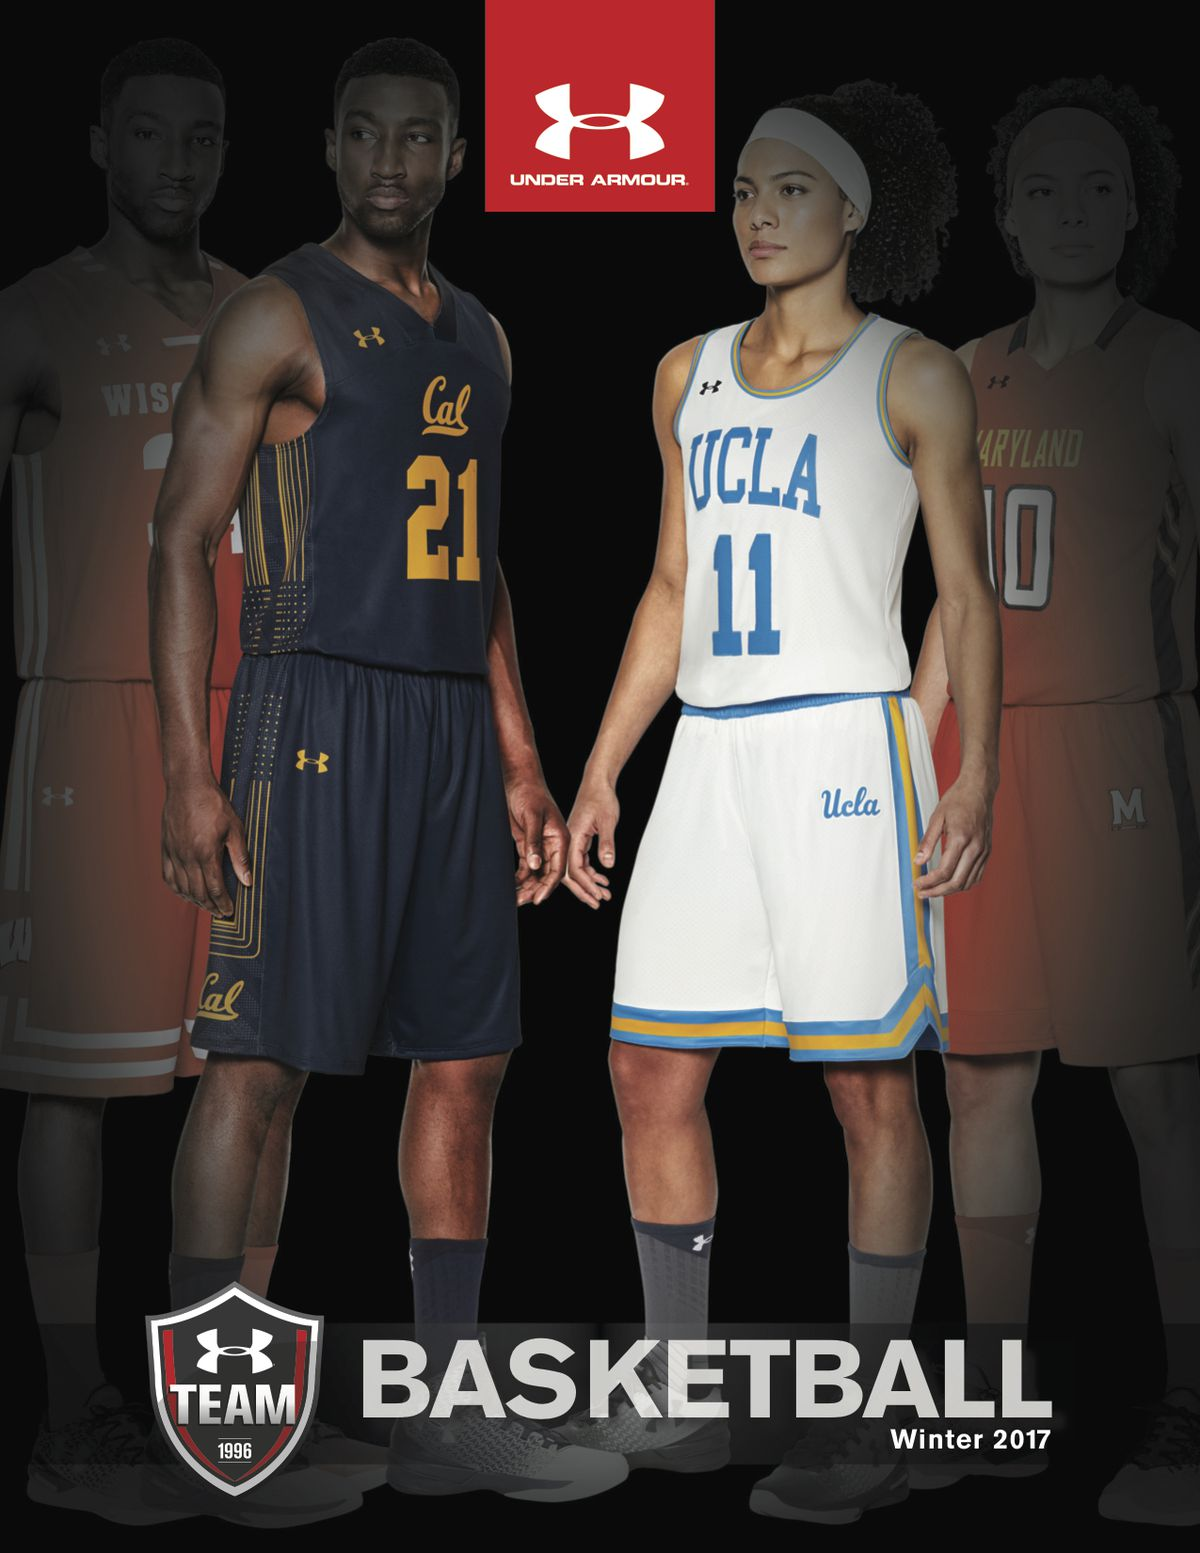 promo code 89946 6b83e Under Armour catalog features Cal basketball pictures ...